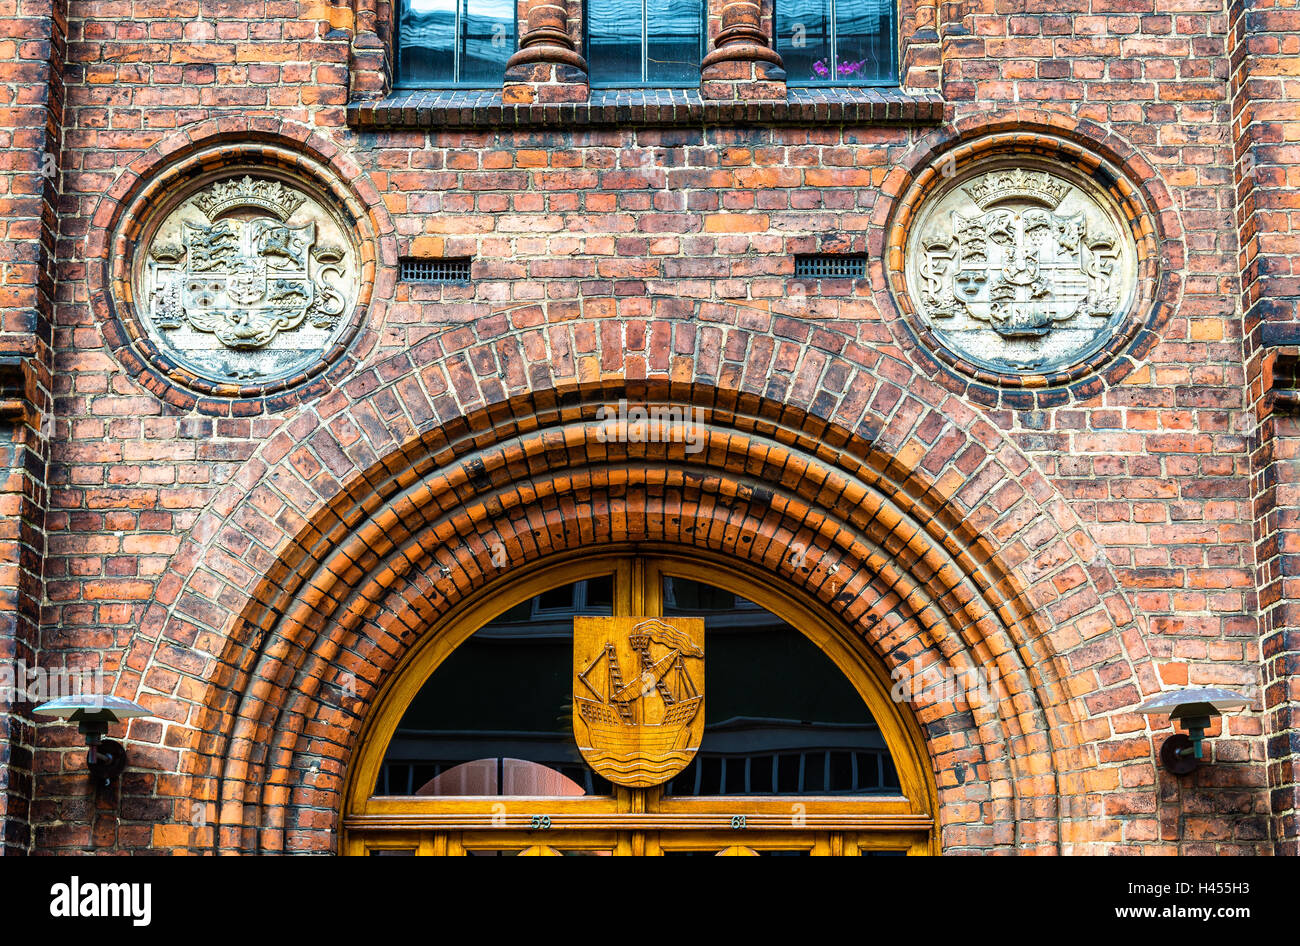 The city hall of Elsinore or Helsingor in Denmark - Stock Image